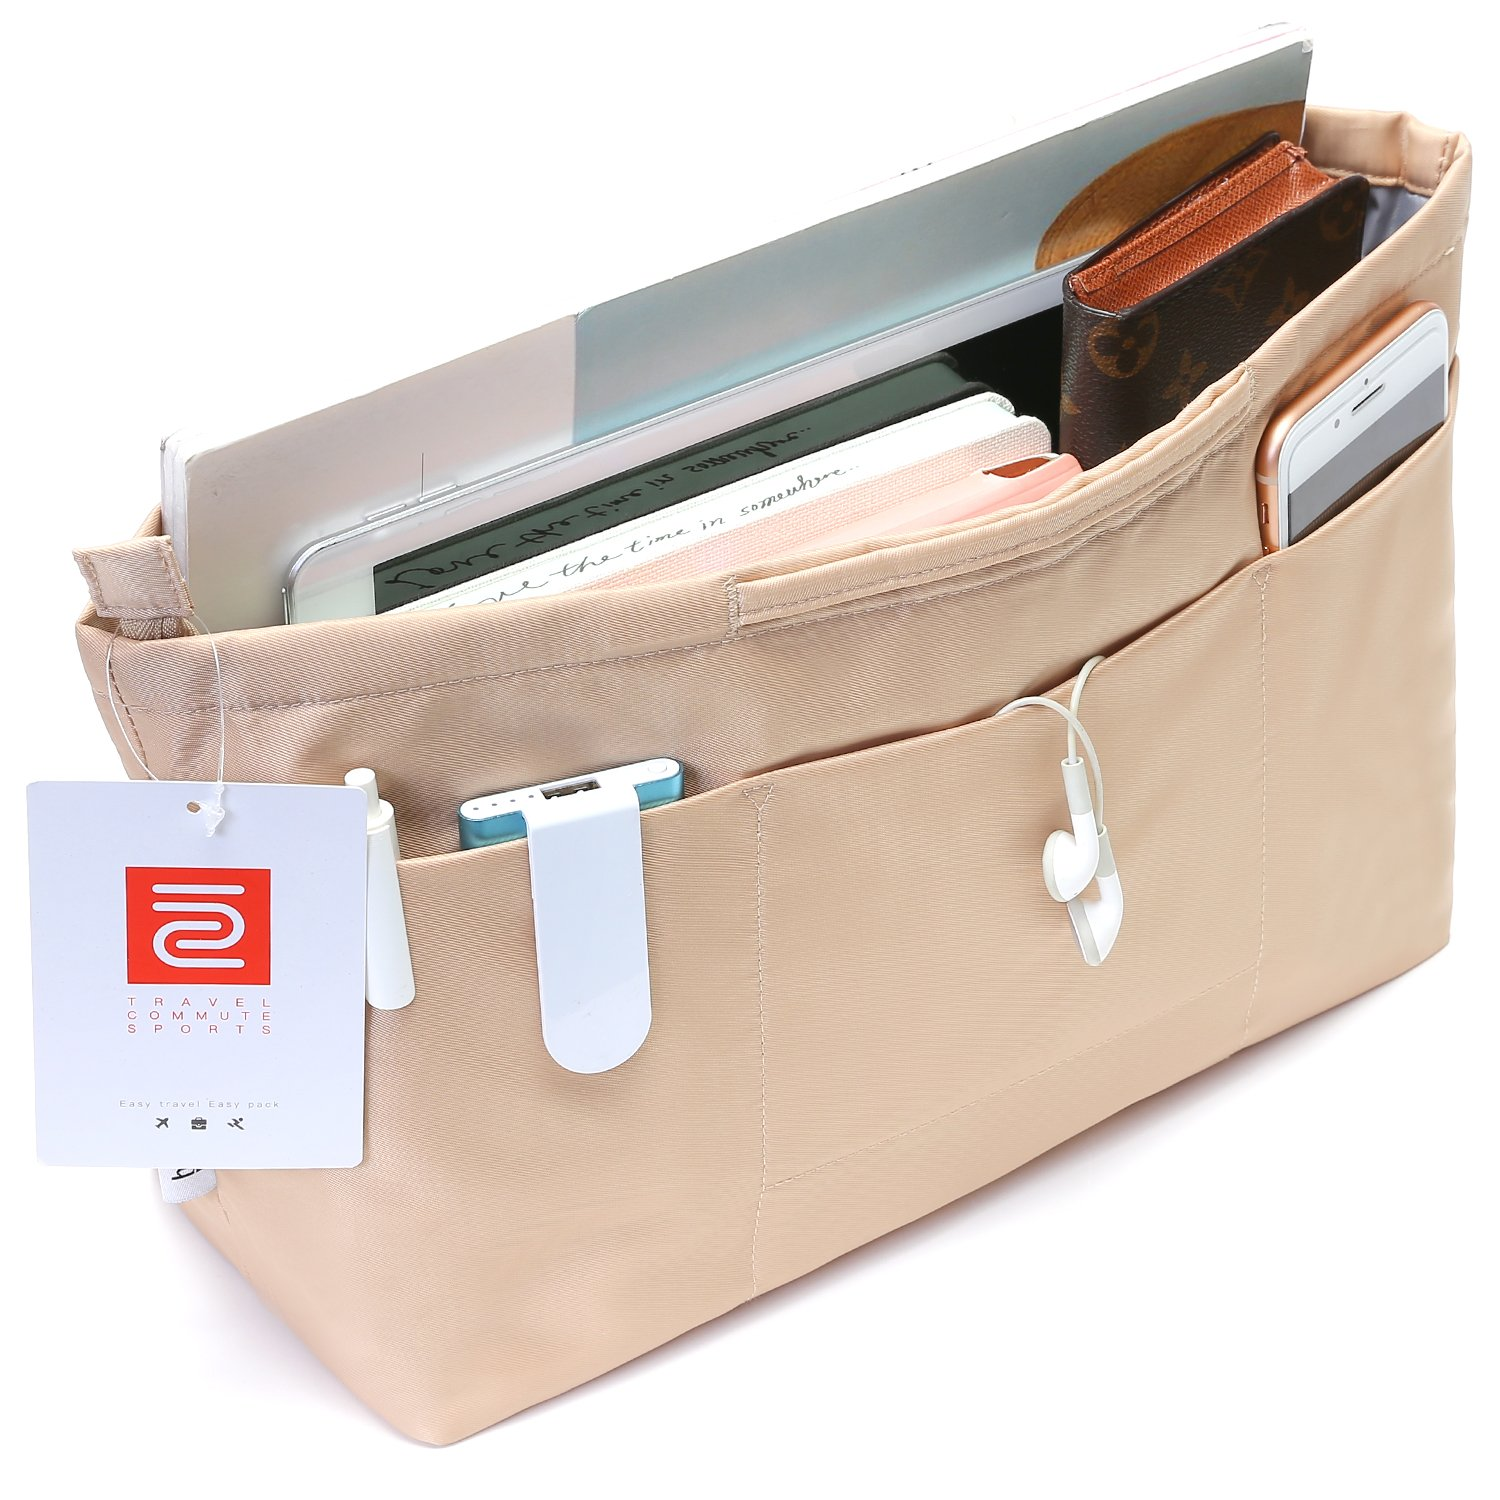 iN. Multi-Pocket Travel Handbag Organizer Insert Medium for Tote bag Purse Liner Insert Organizer With Handles(Medium Khaki)